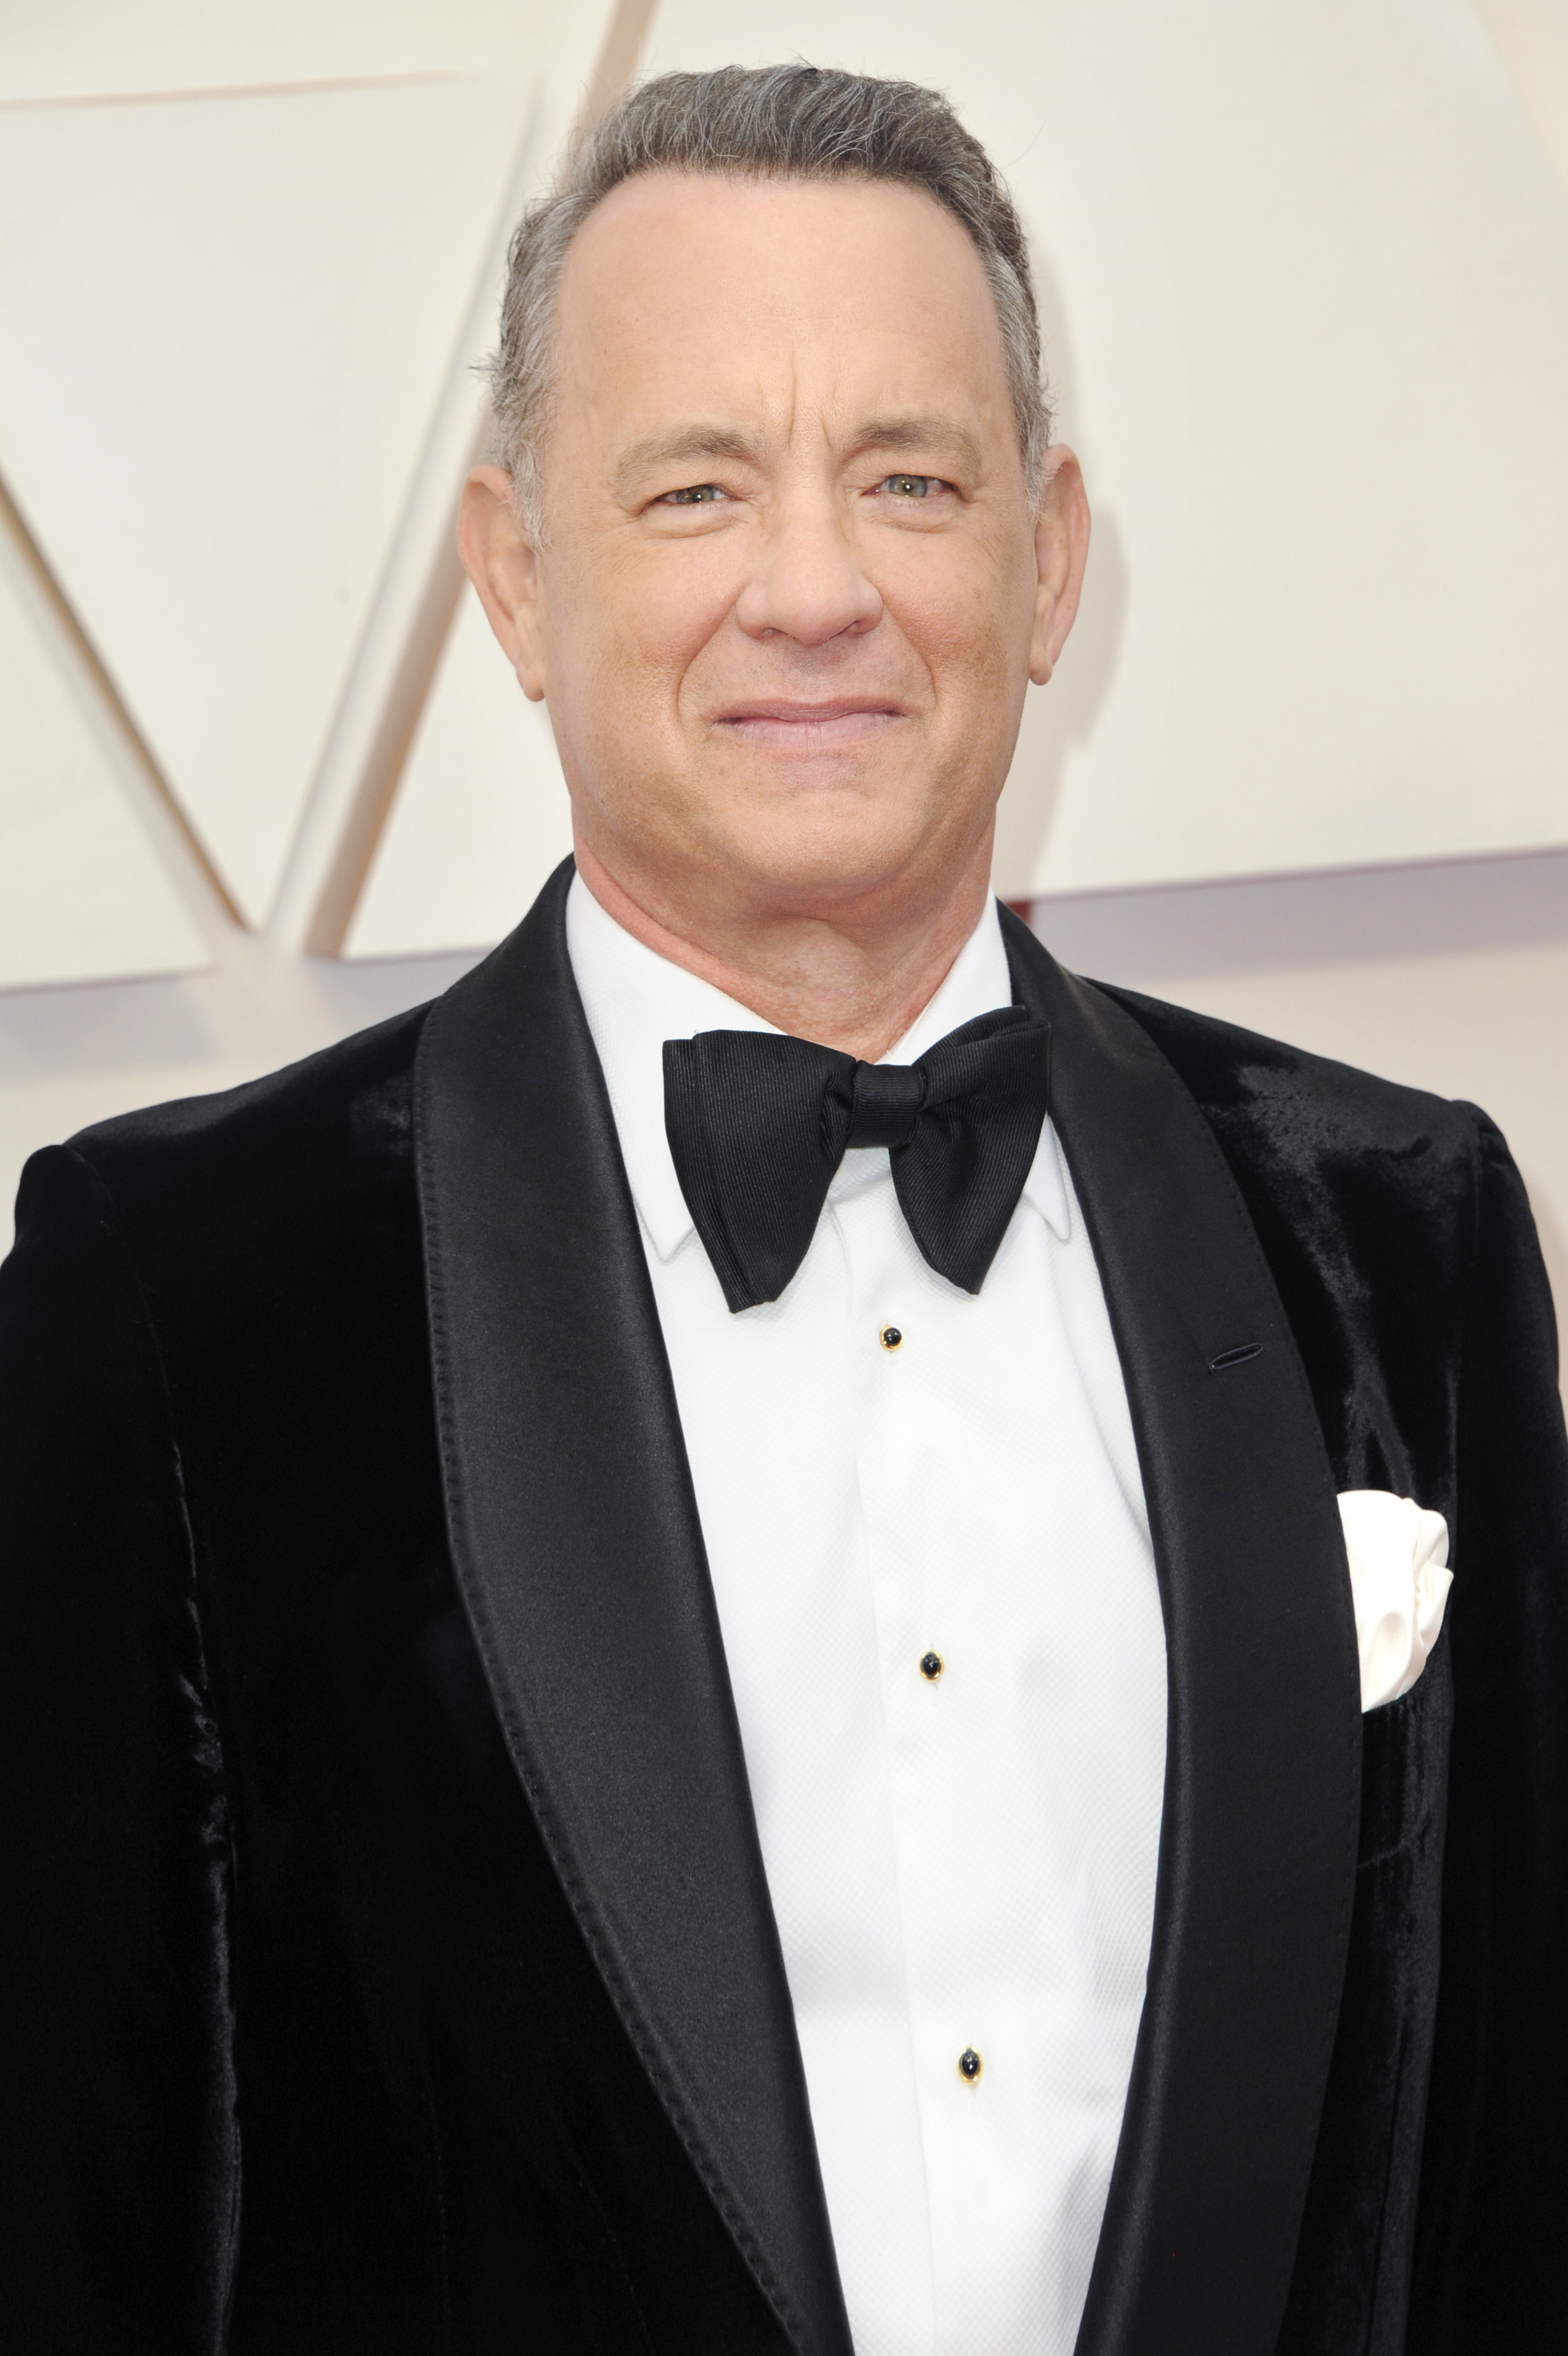 Photo of Tom Hanks in a dressy suit and bow-tie